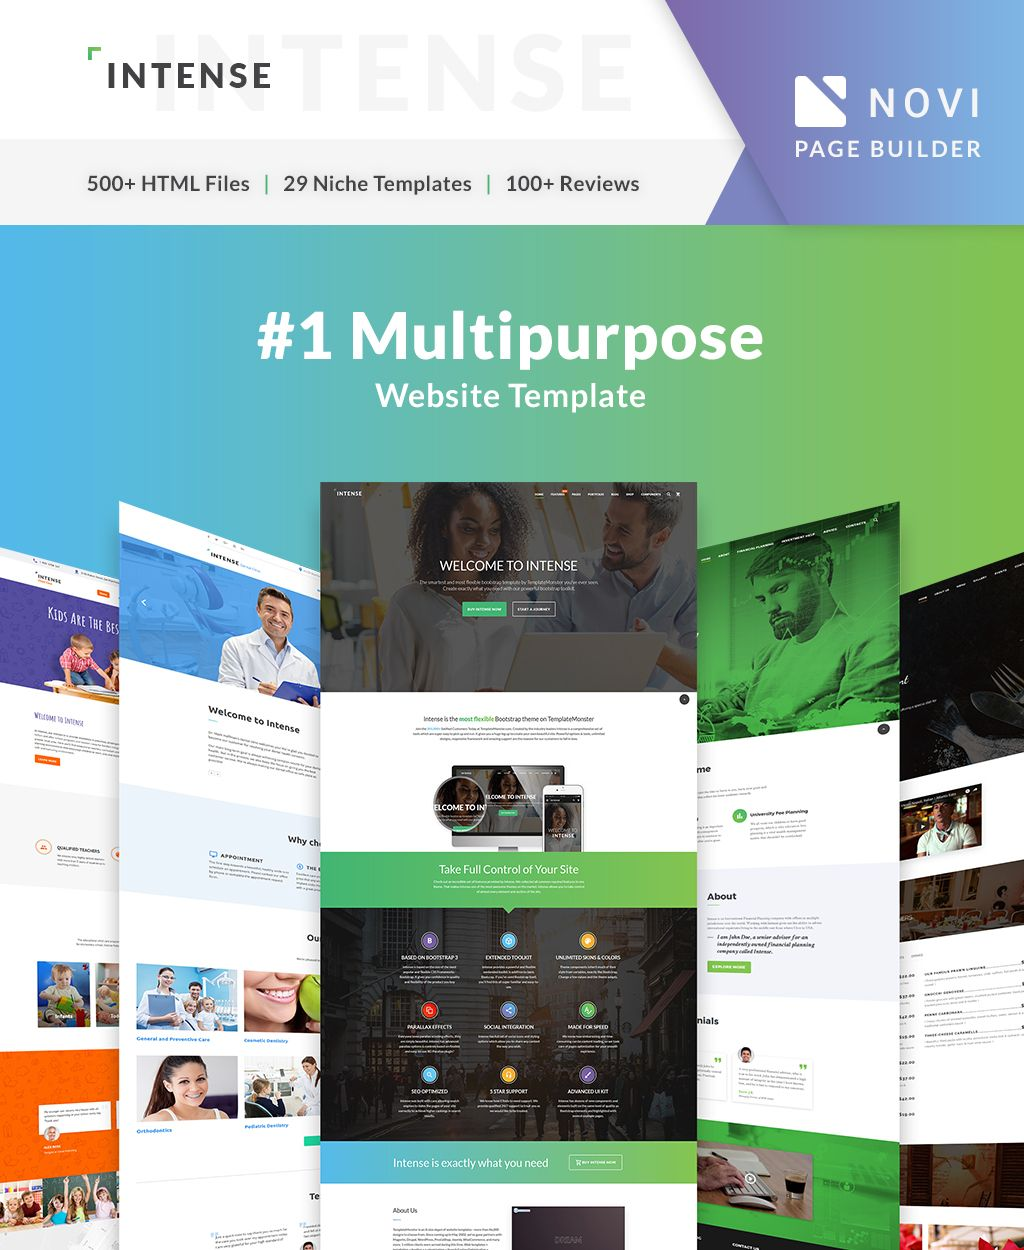 A Multi Purpose Wp Template With Various Options For Creative Use In Different Types Of Business And Website Website Template Ecommerce Template Website Themes